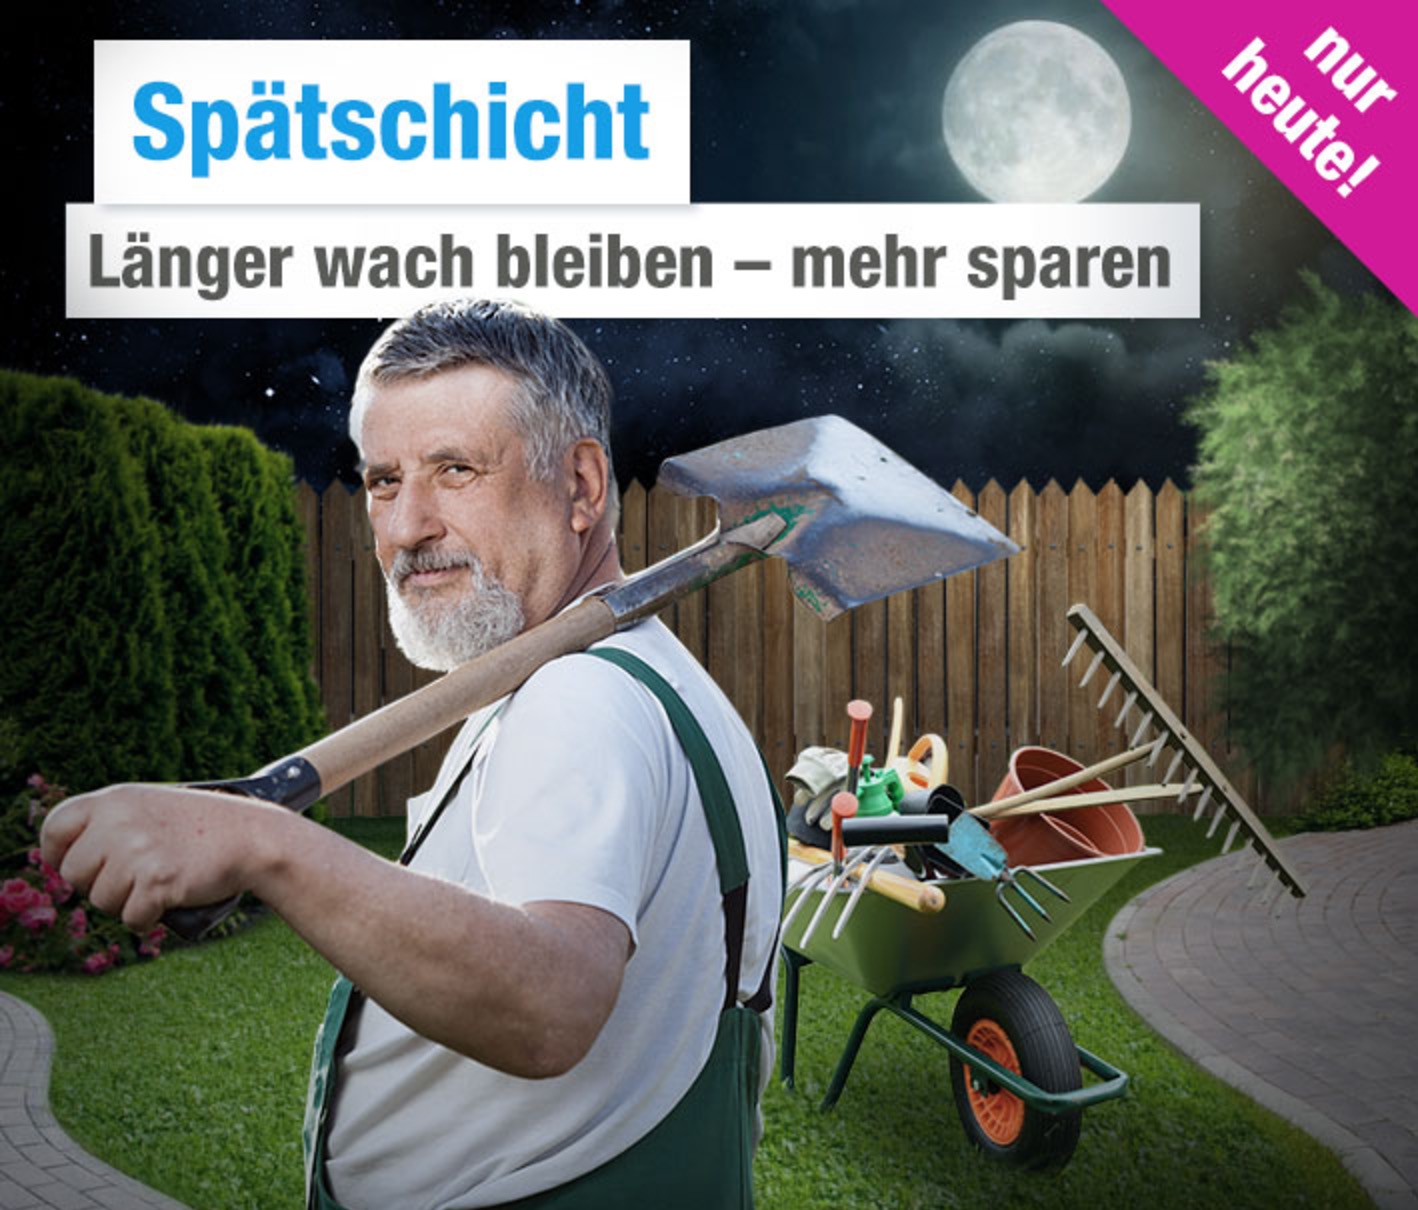 GartenXXL: Bis zu 10,- Euro Rabatt beim Late Night Shopping